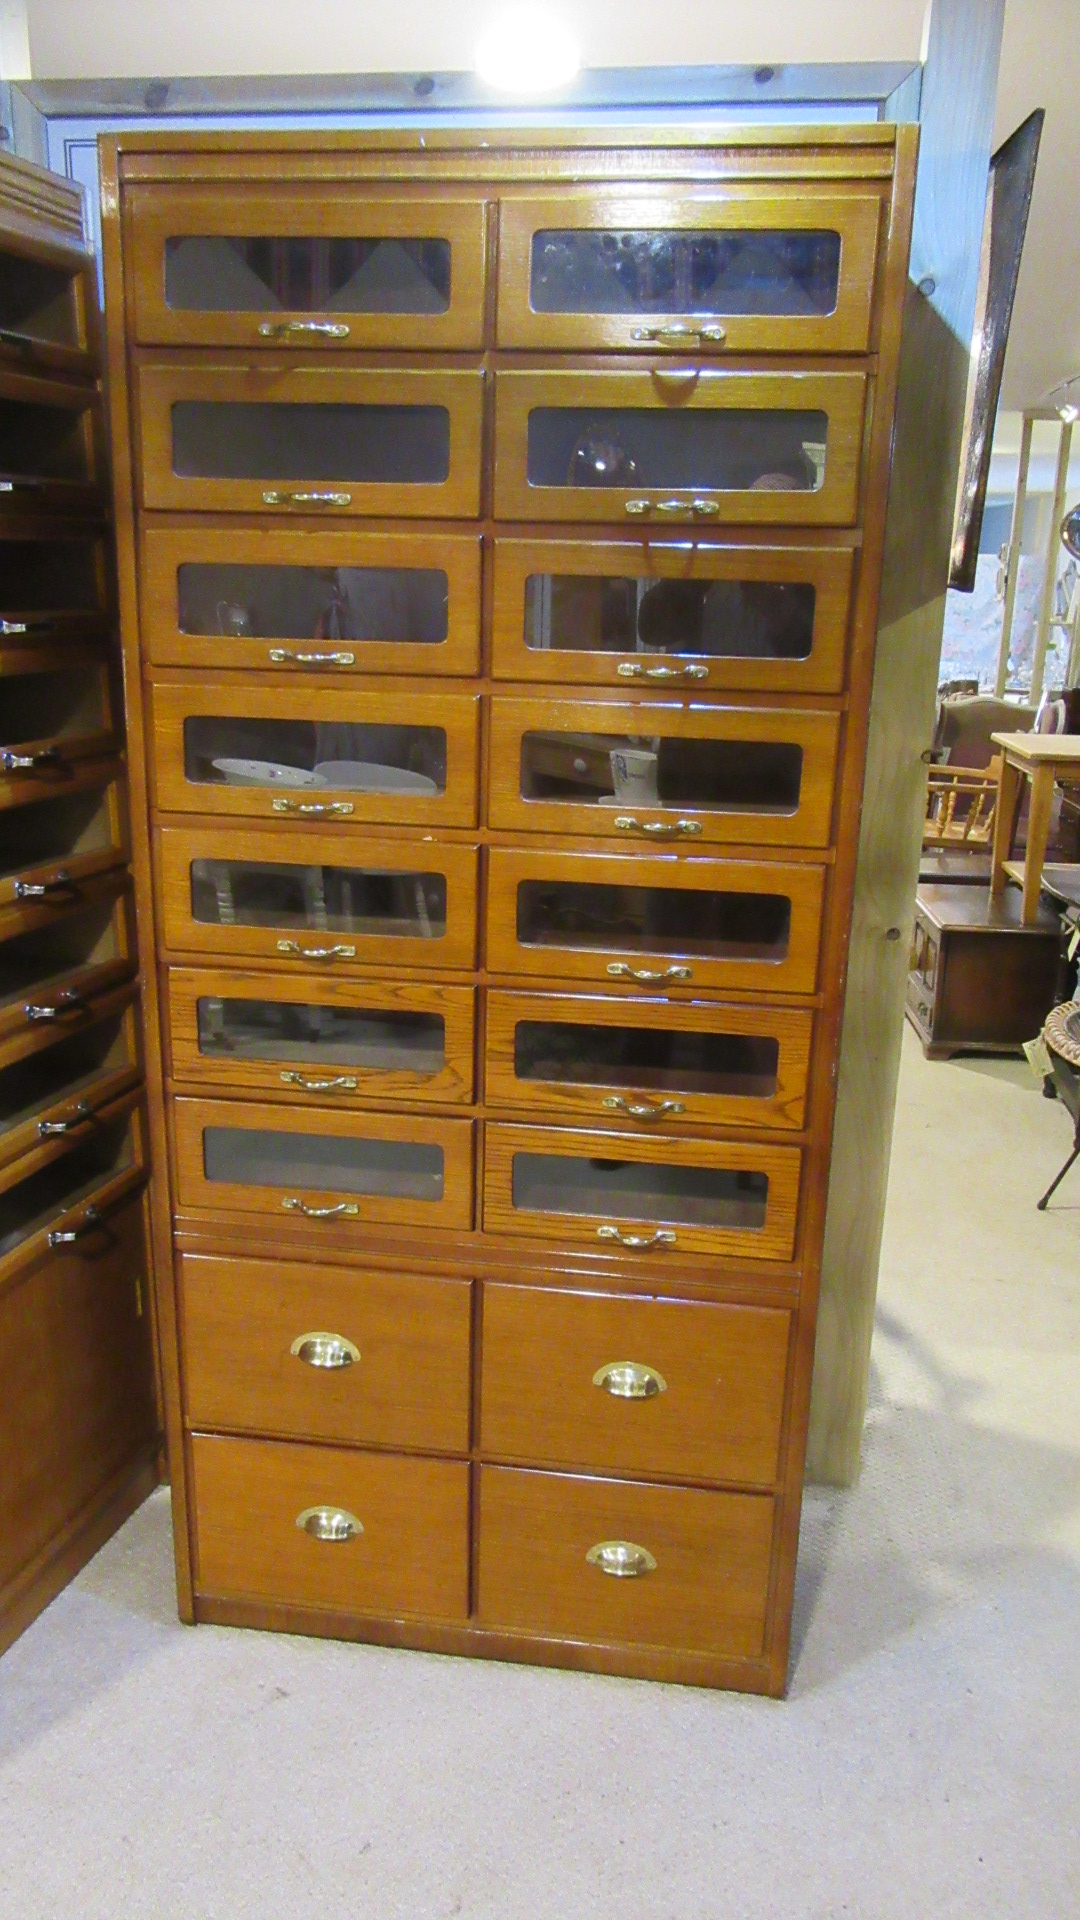 VINTAGE OAK HABERDASHERY SHOP DISPLAY CABINET